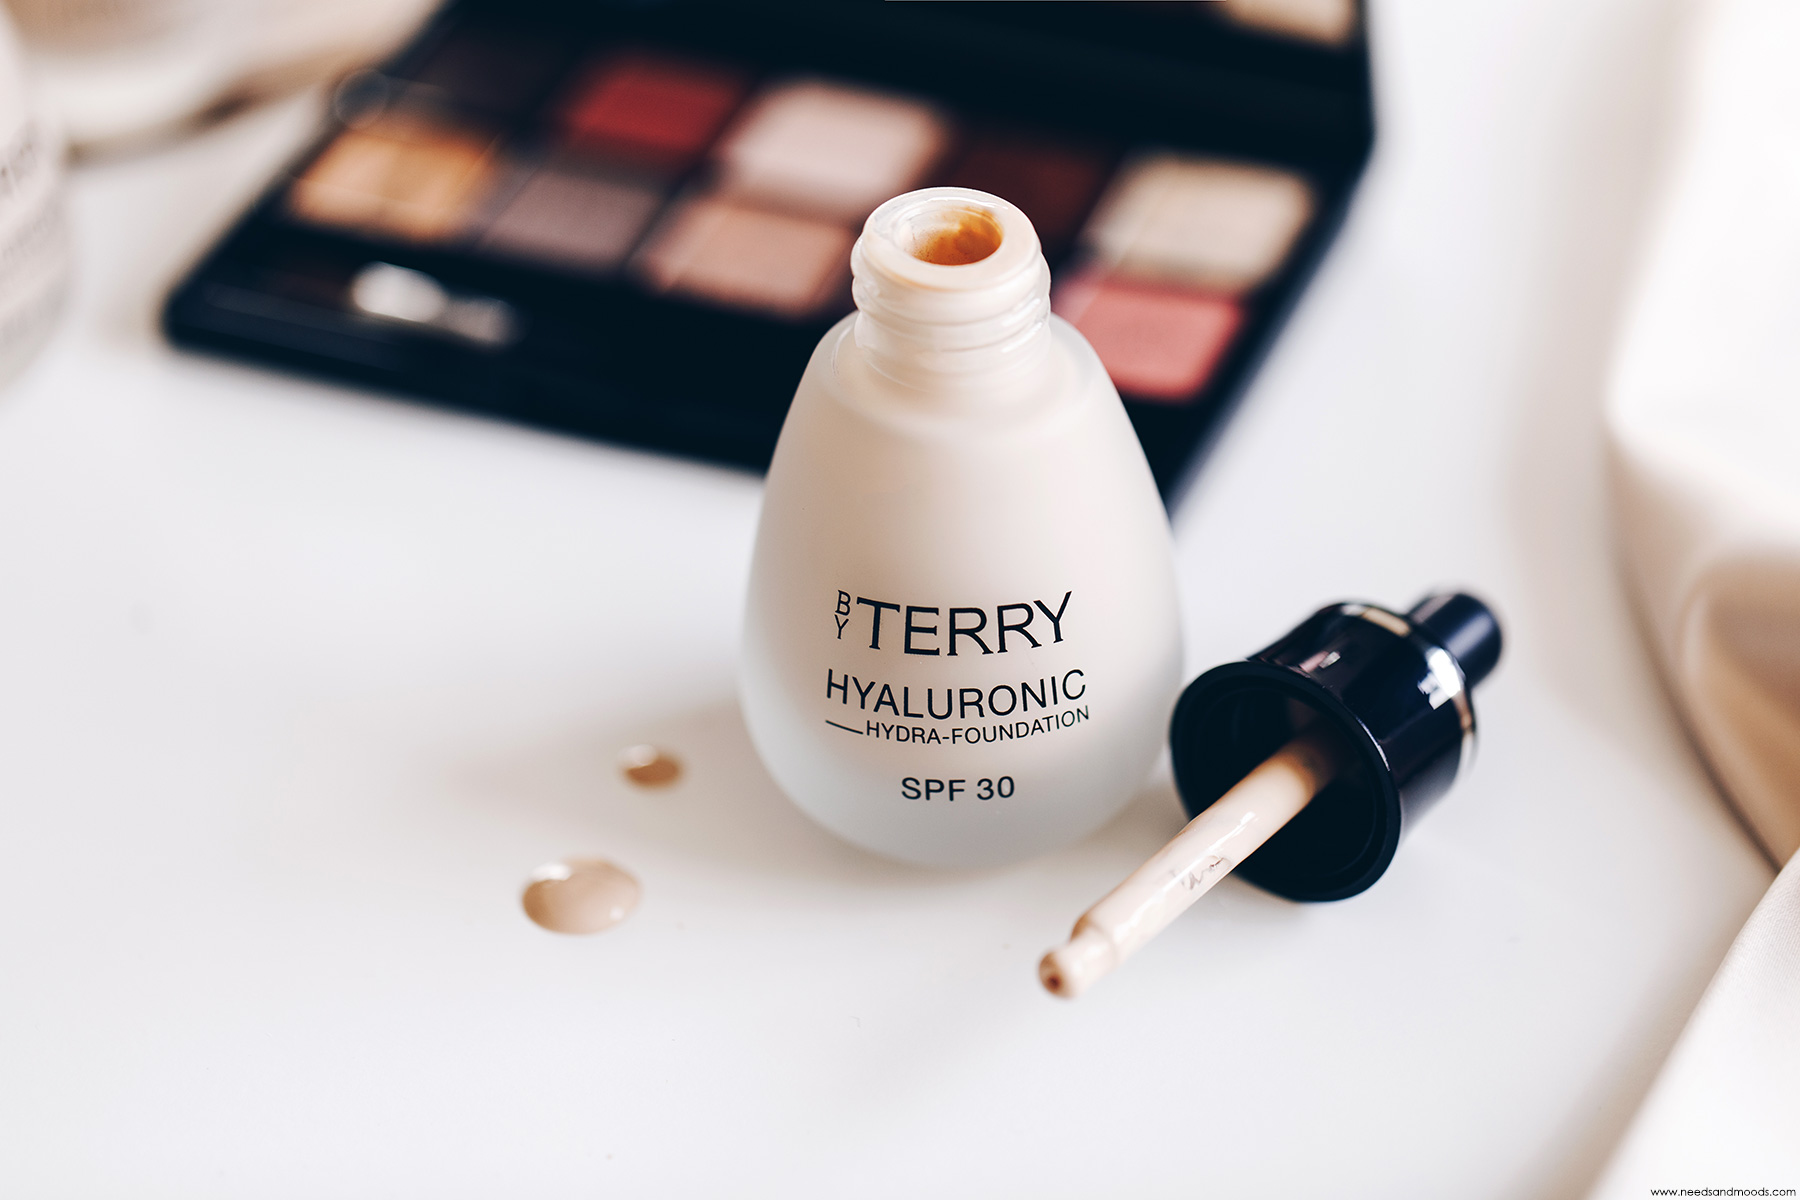 hyaluronic hydra foundation by terry